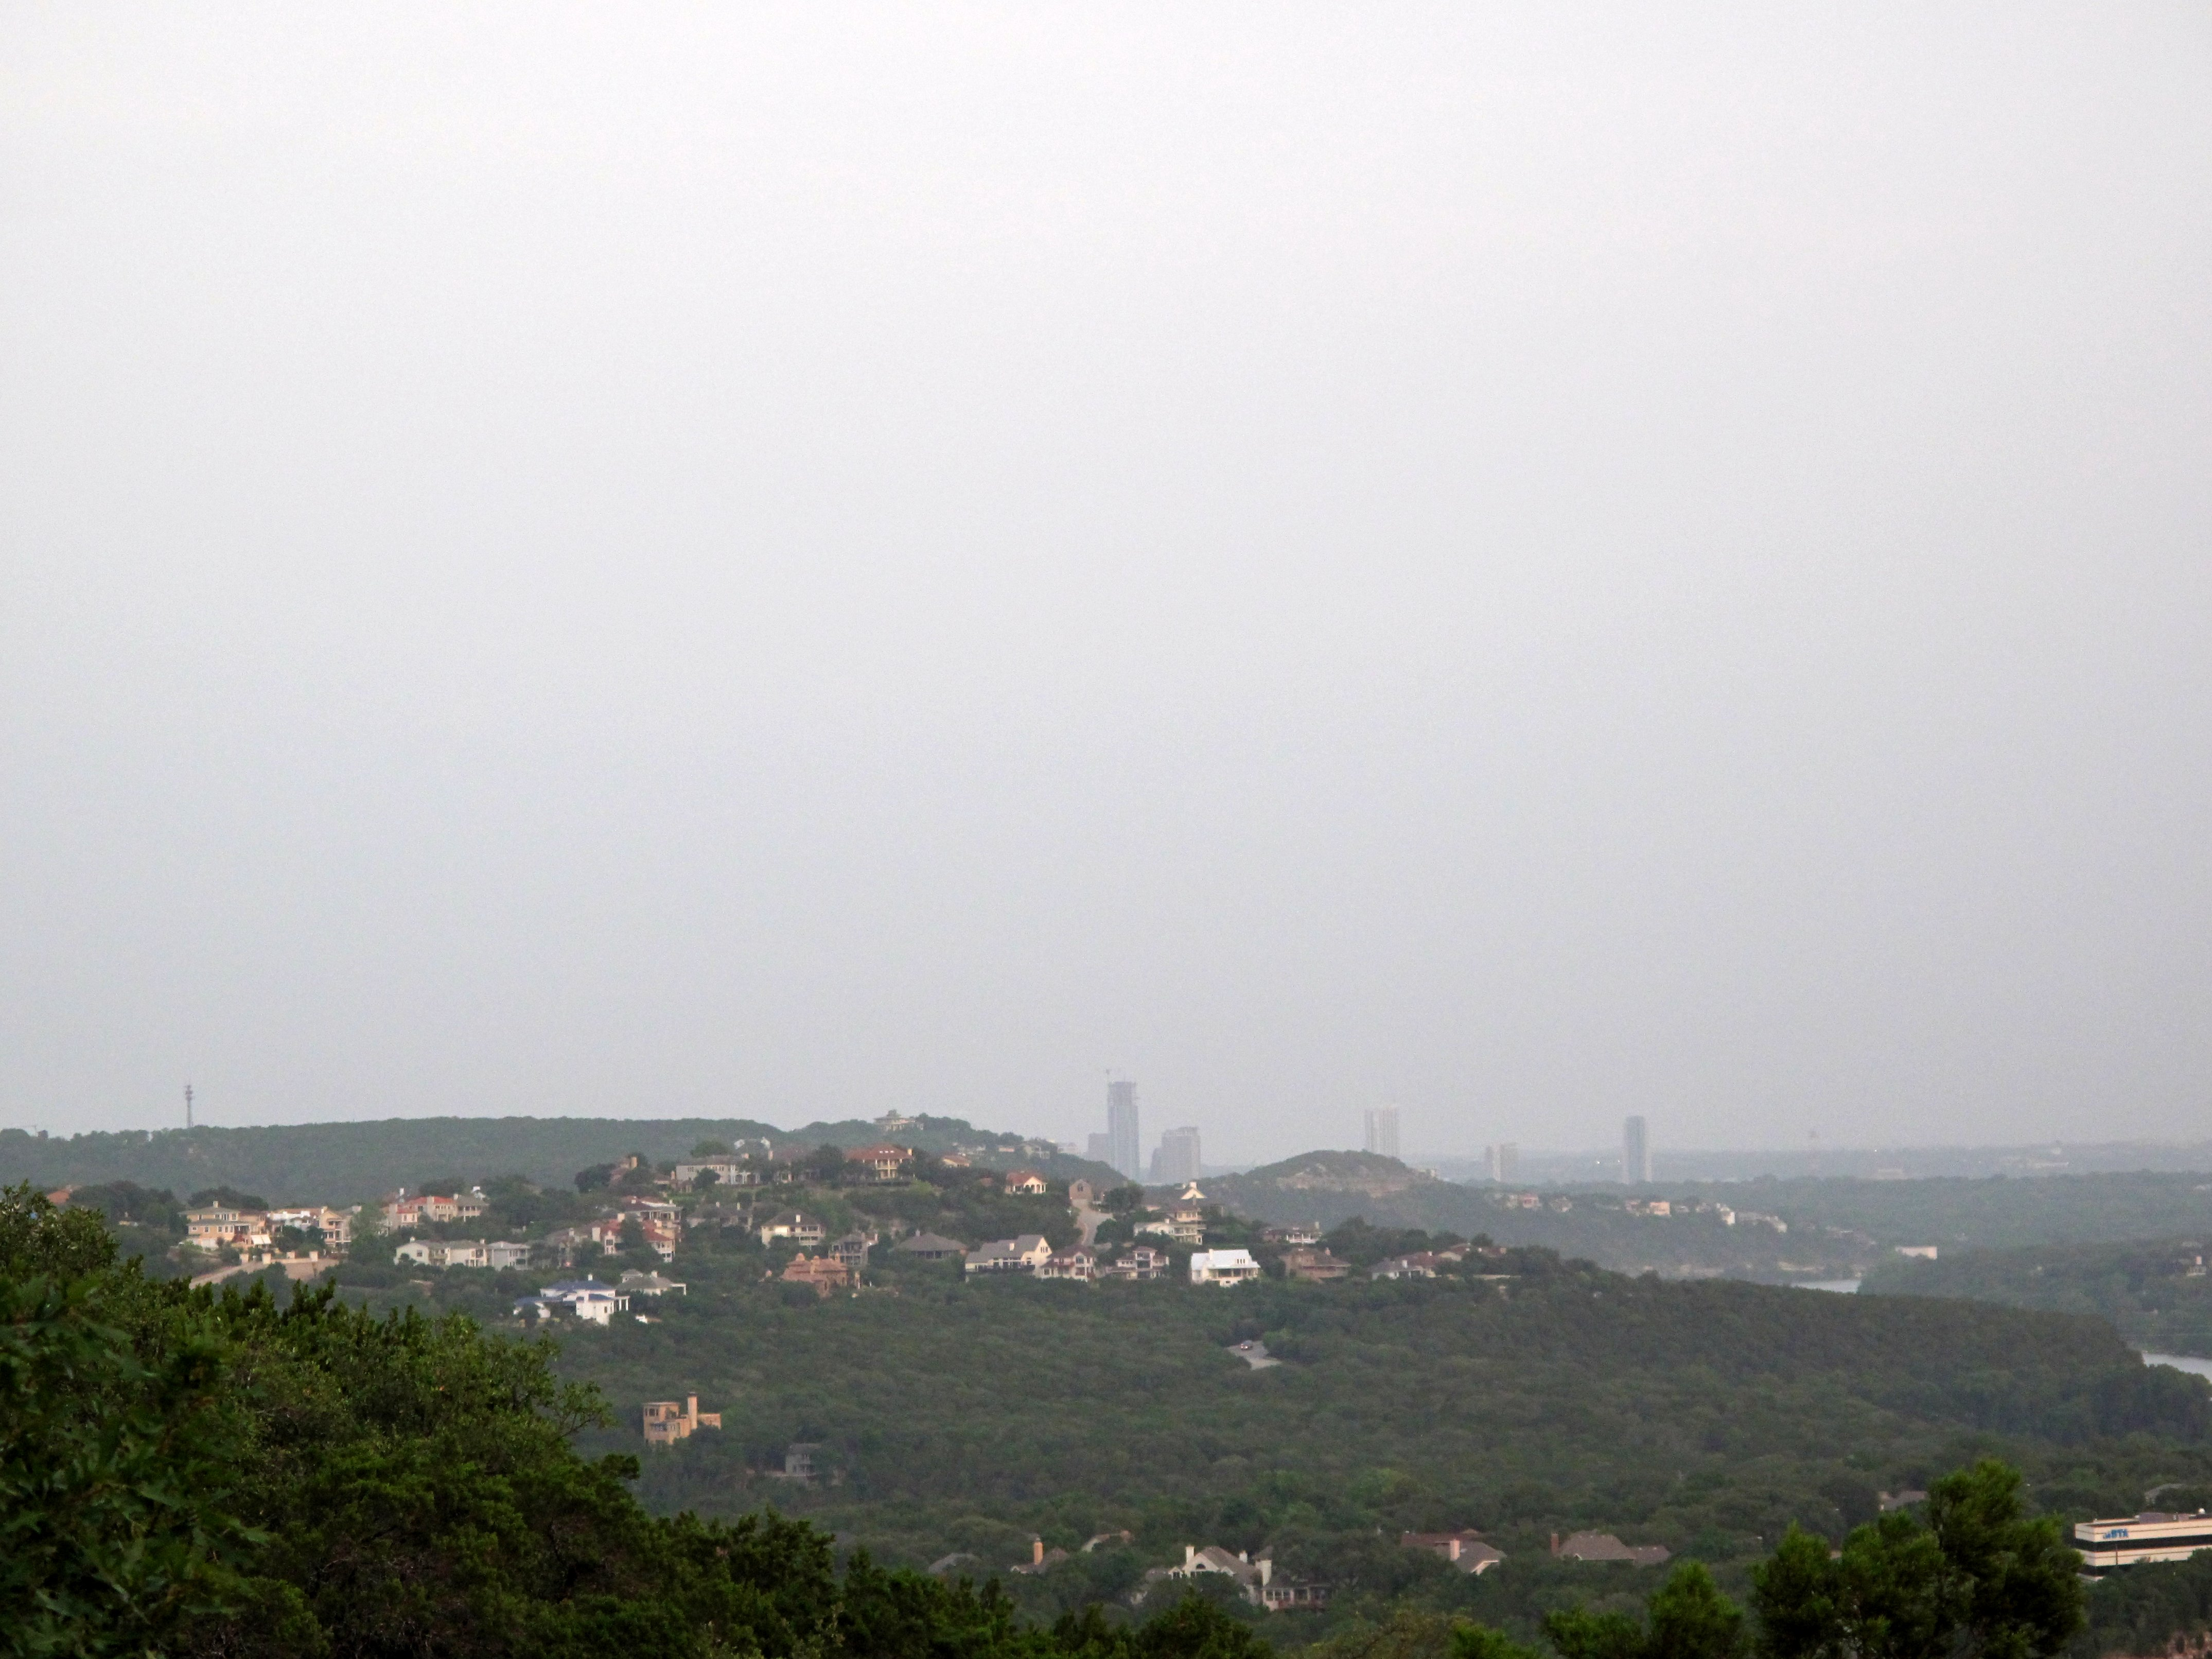 Distant View of Downtown Austin from Northwest Suburbs